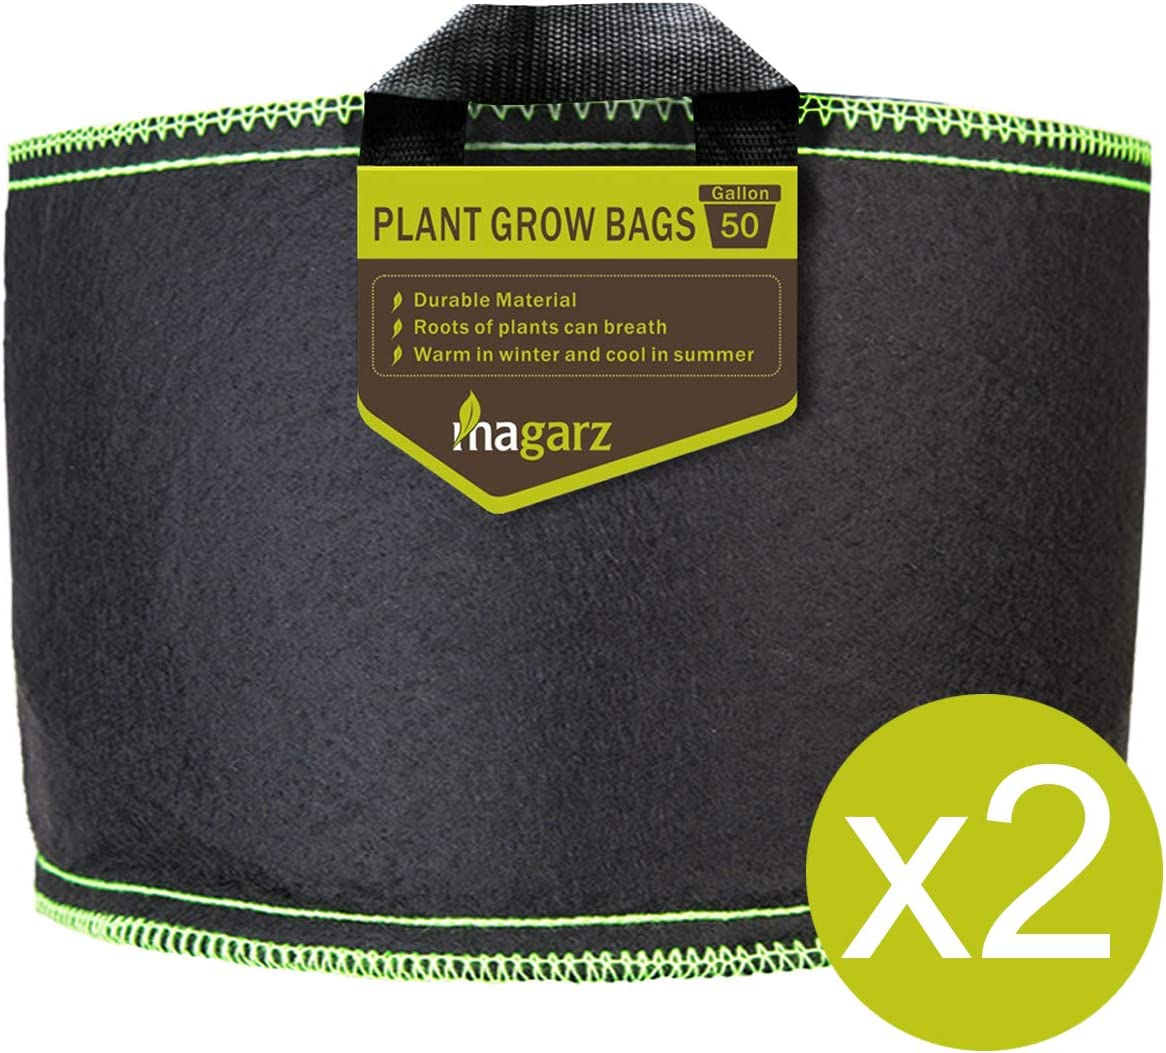 Magarz 2-Pack 50 Gallon Fabric Flower Pots Garden Felt Grow Bags with Handle Black